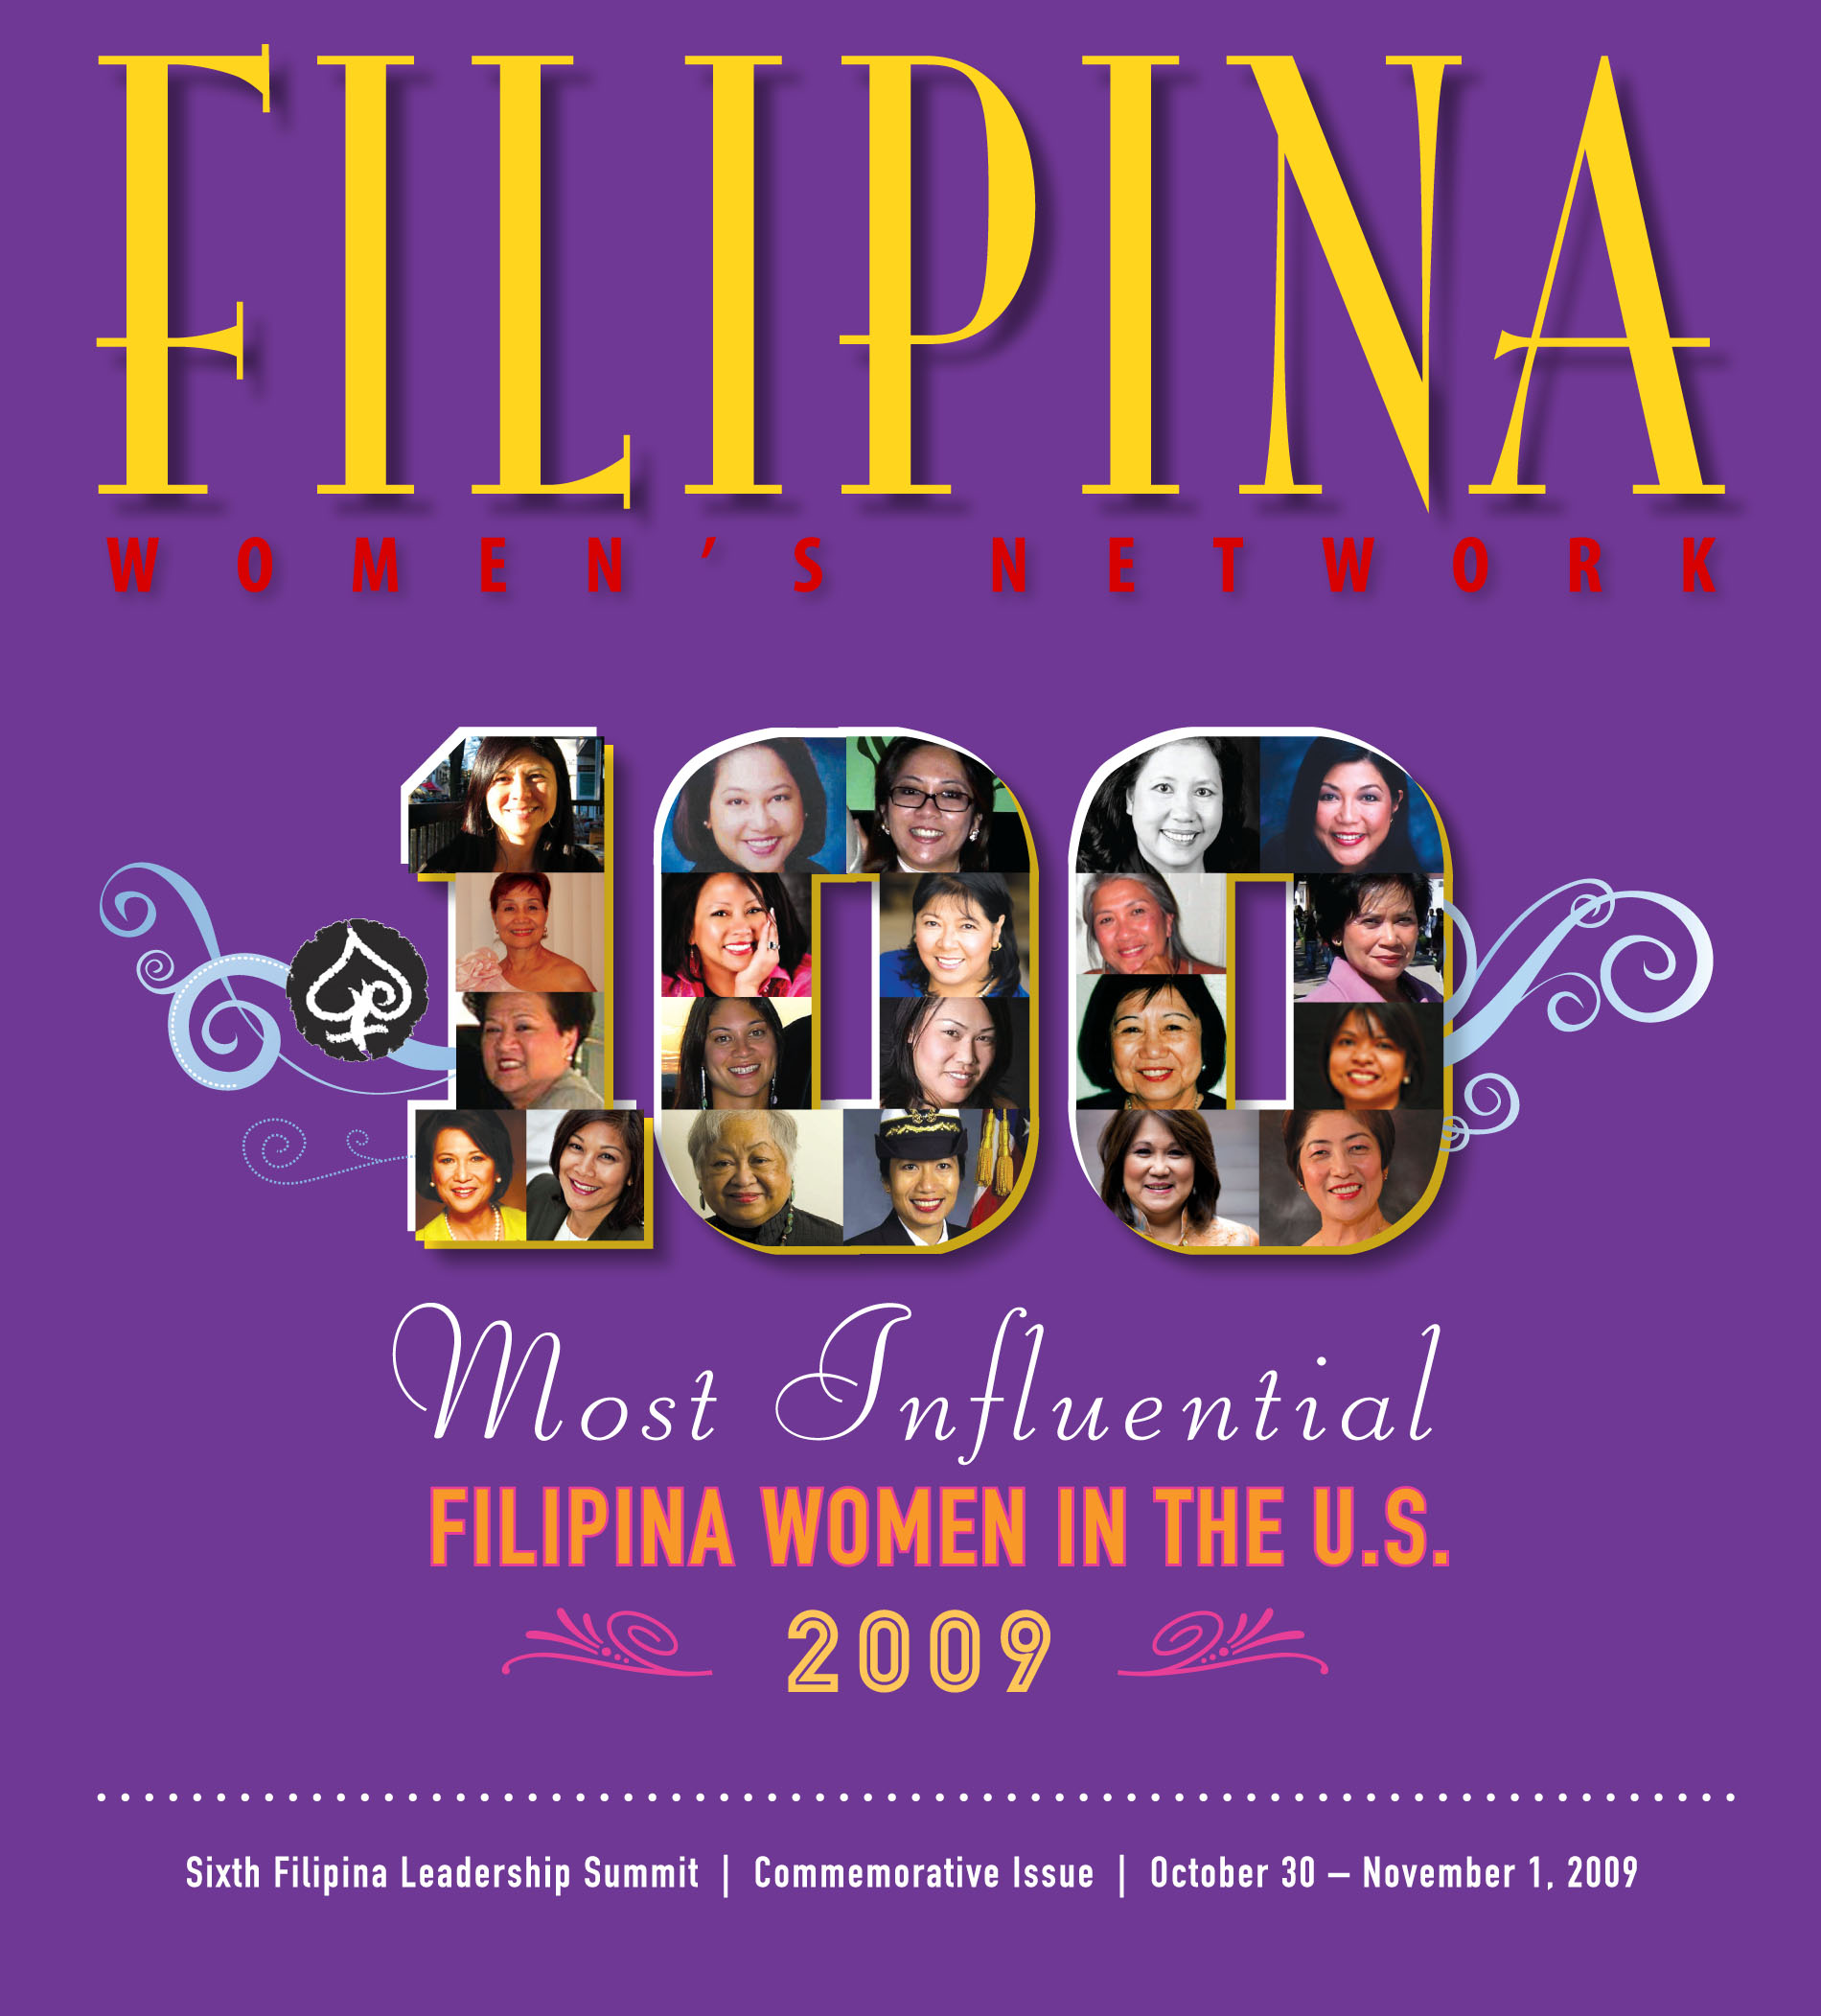 100 Most Influential Filipina Women in the U.S. (2009)